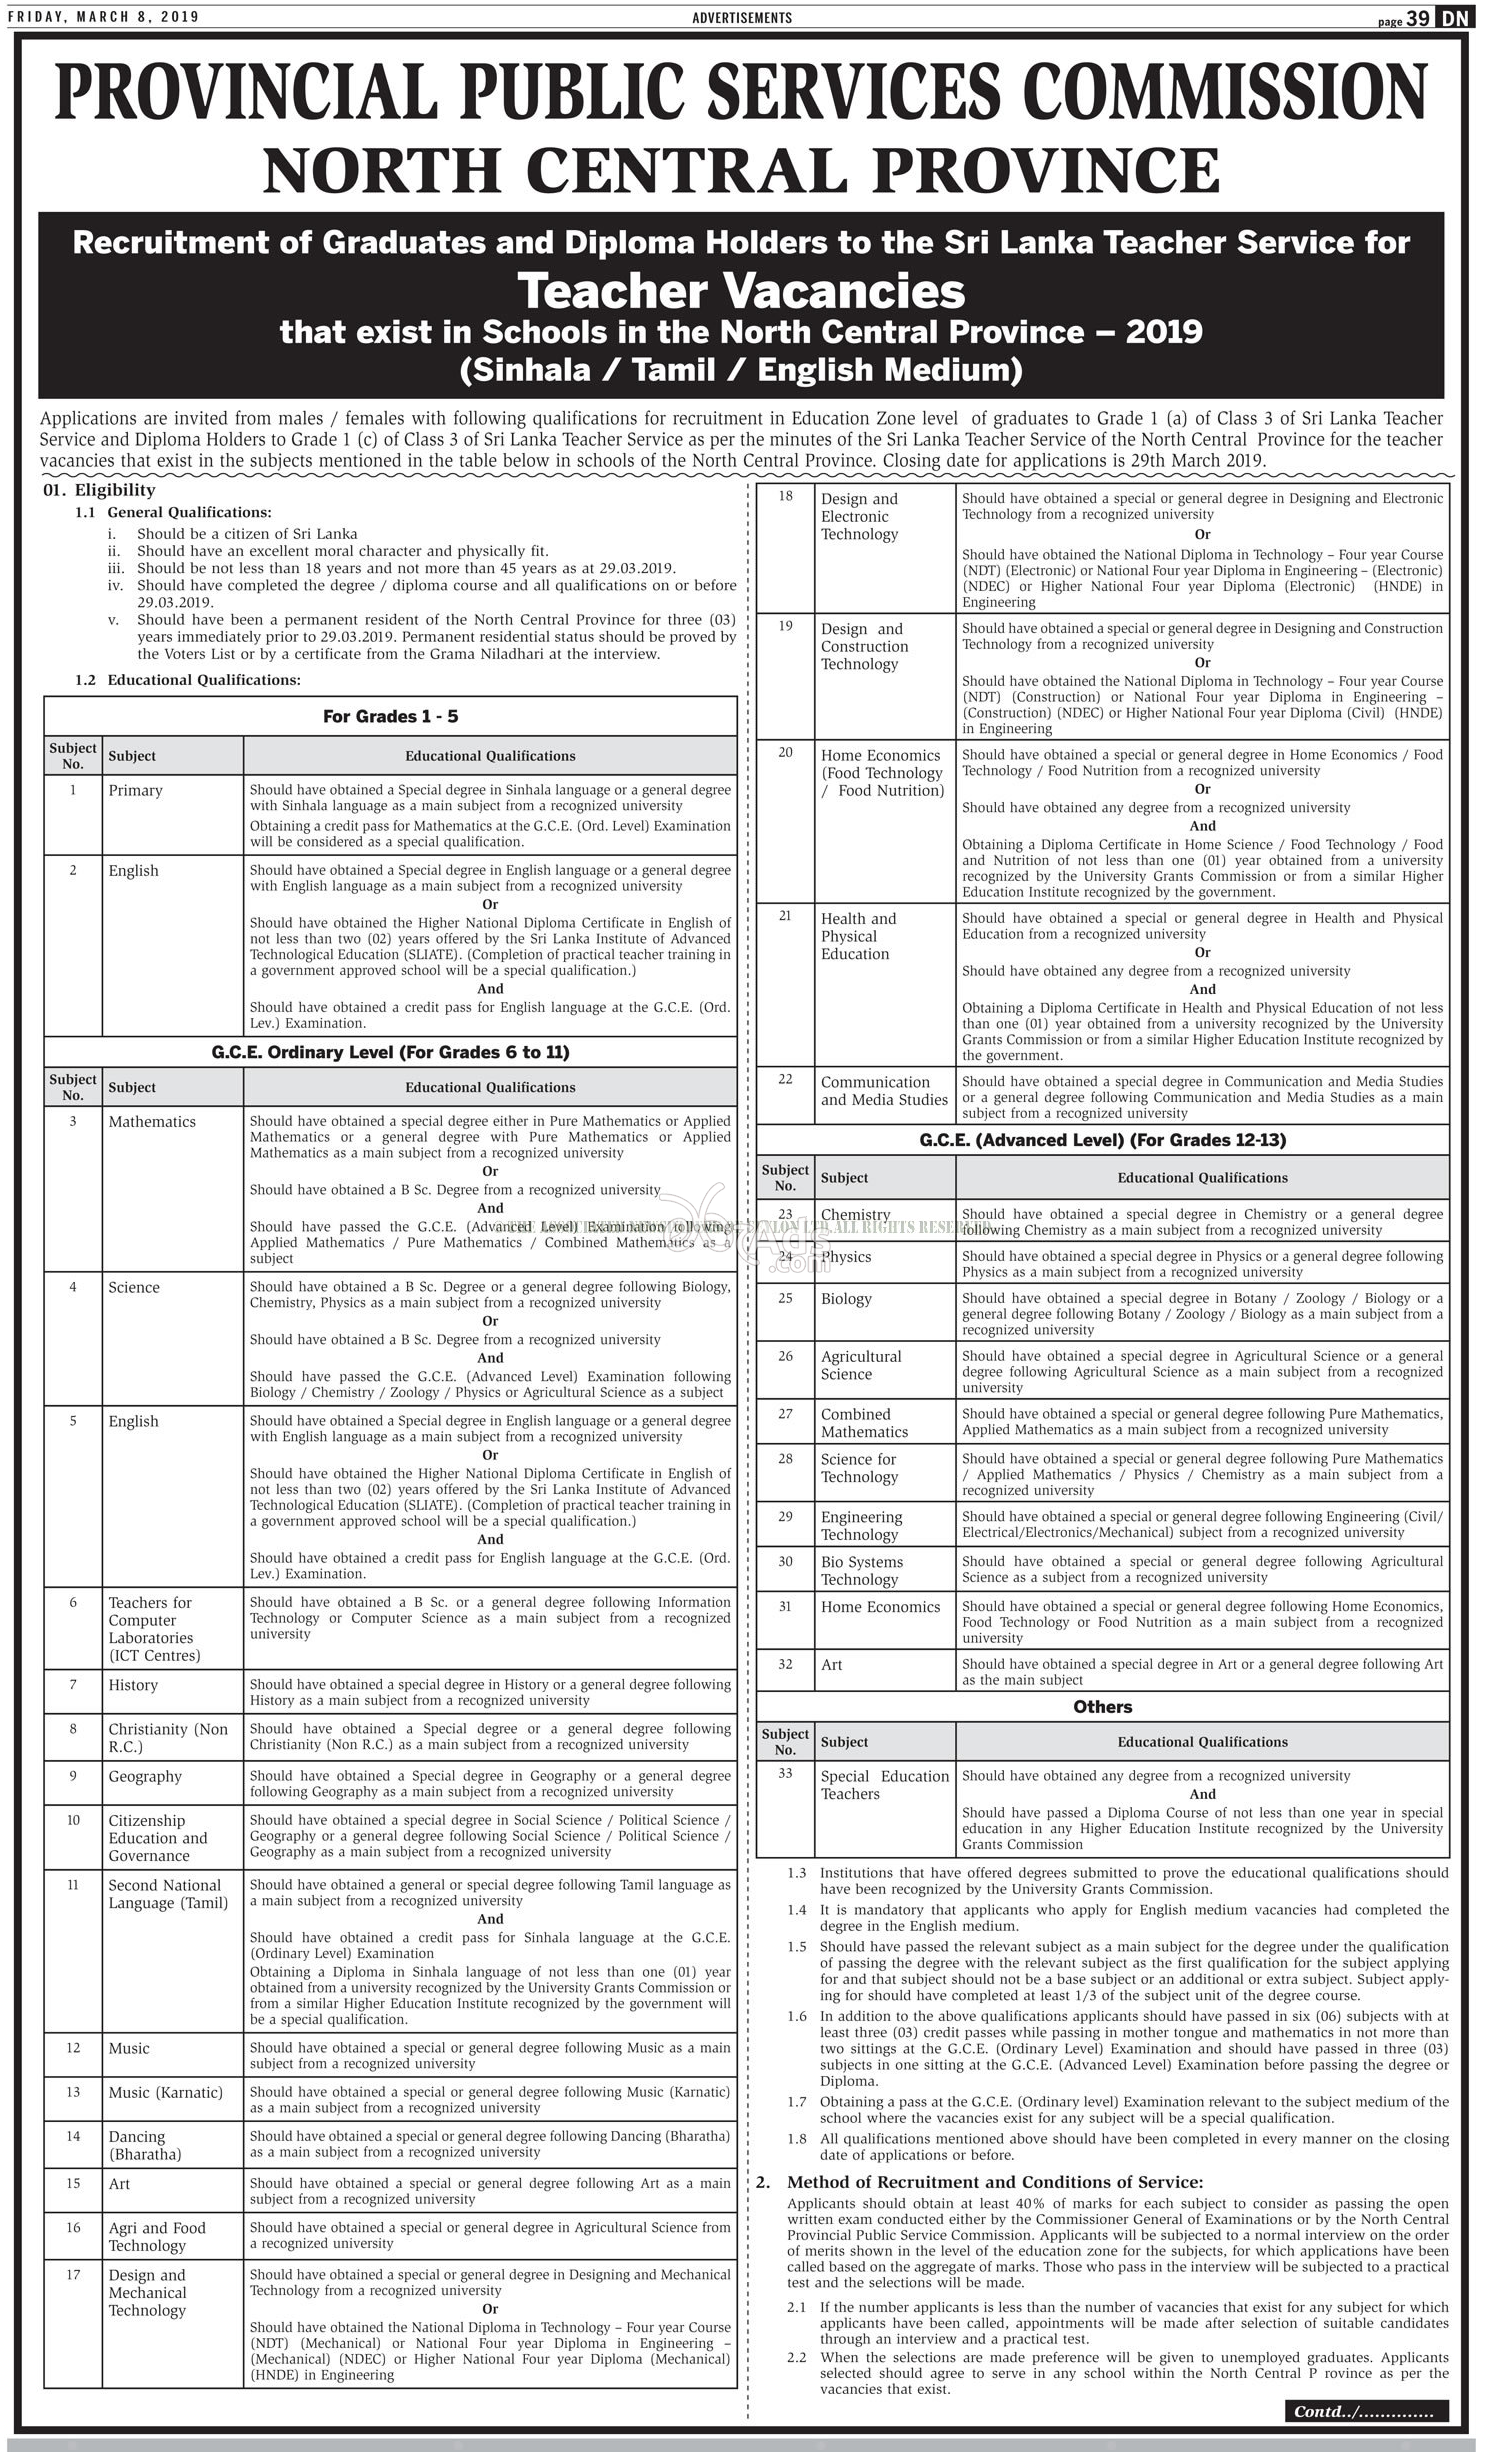 Teachers Government Vacancies at Public Service Commission - North